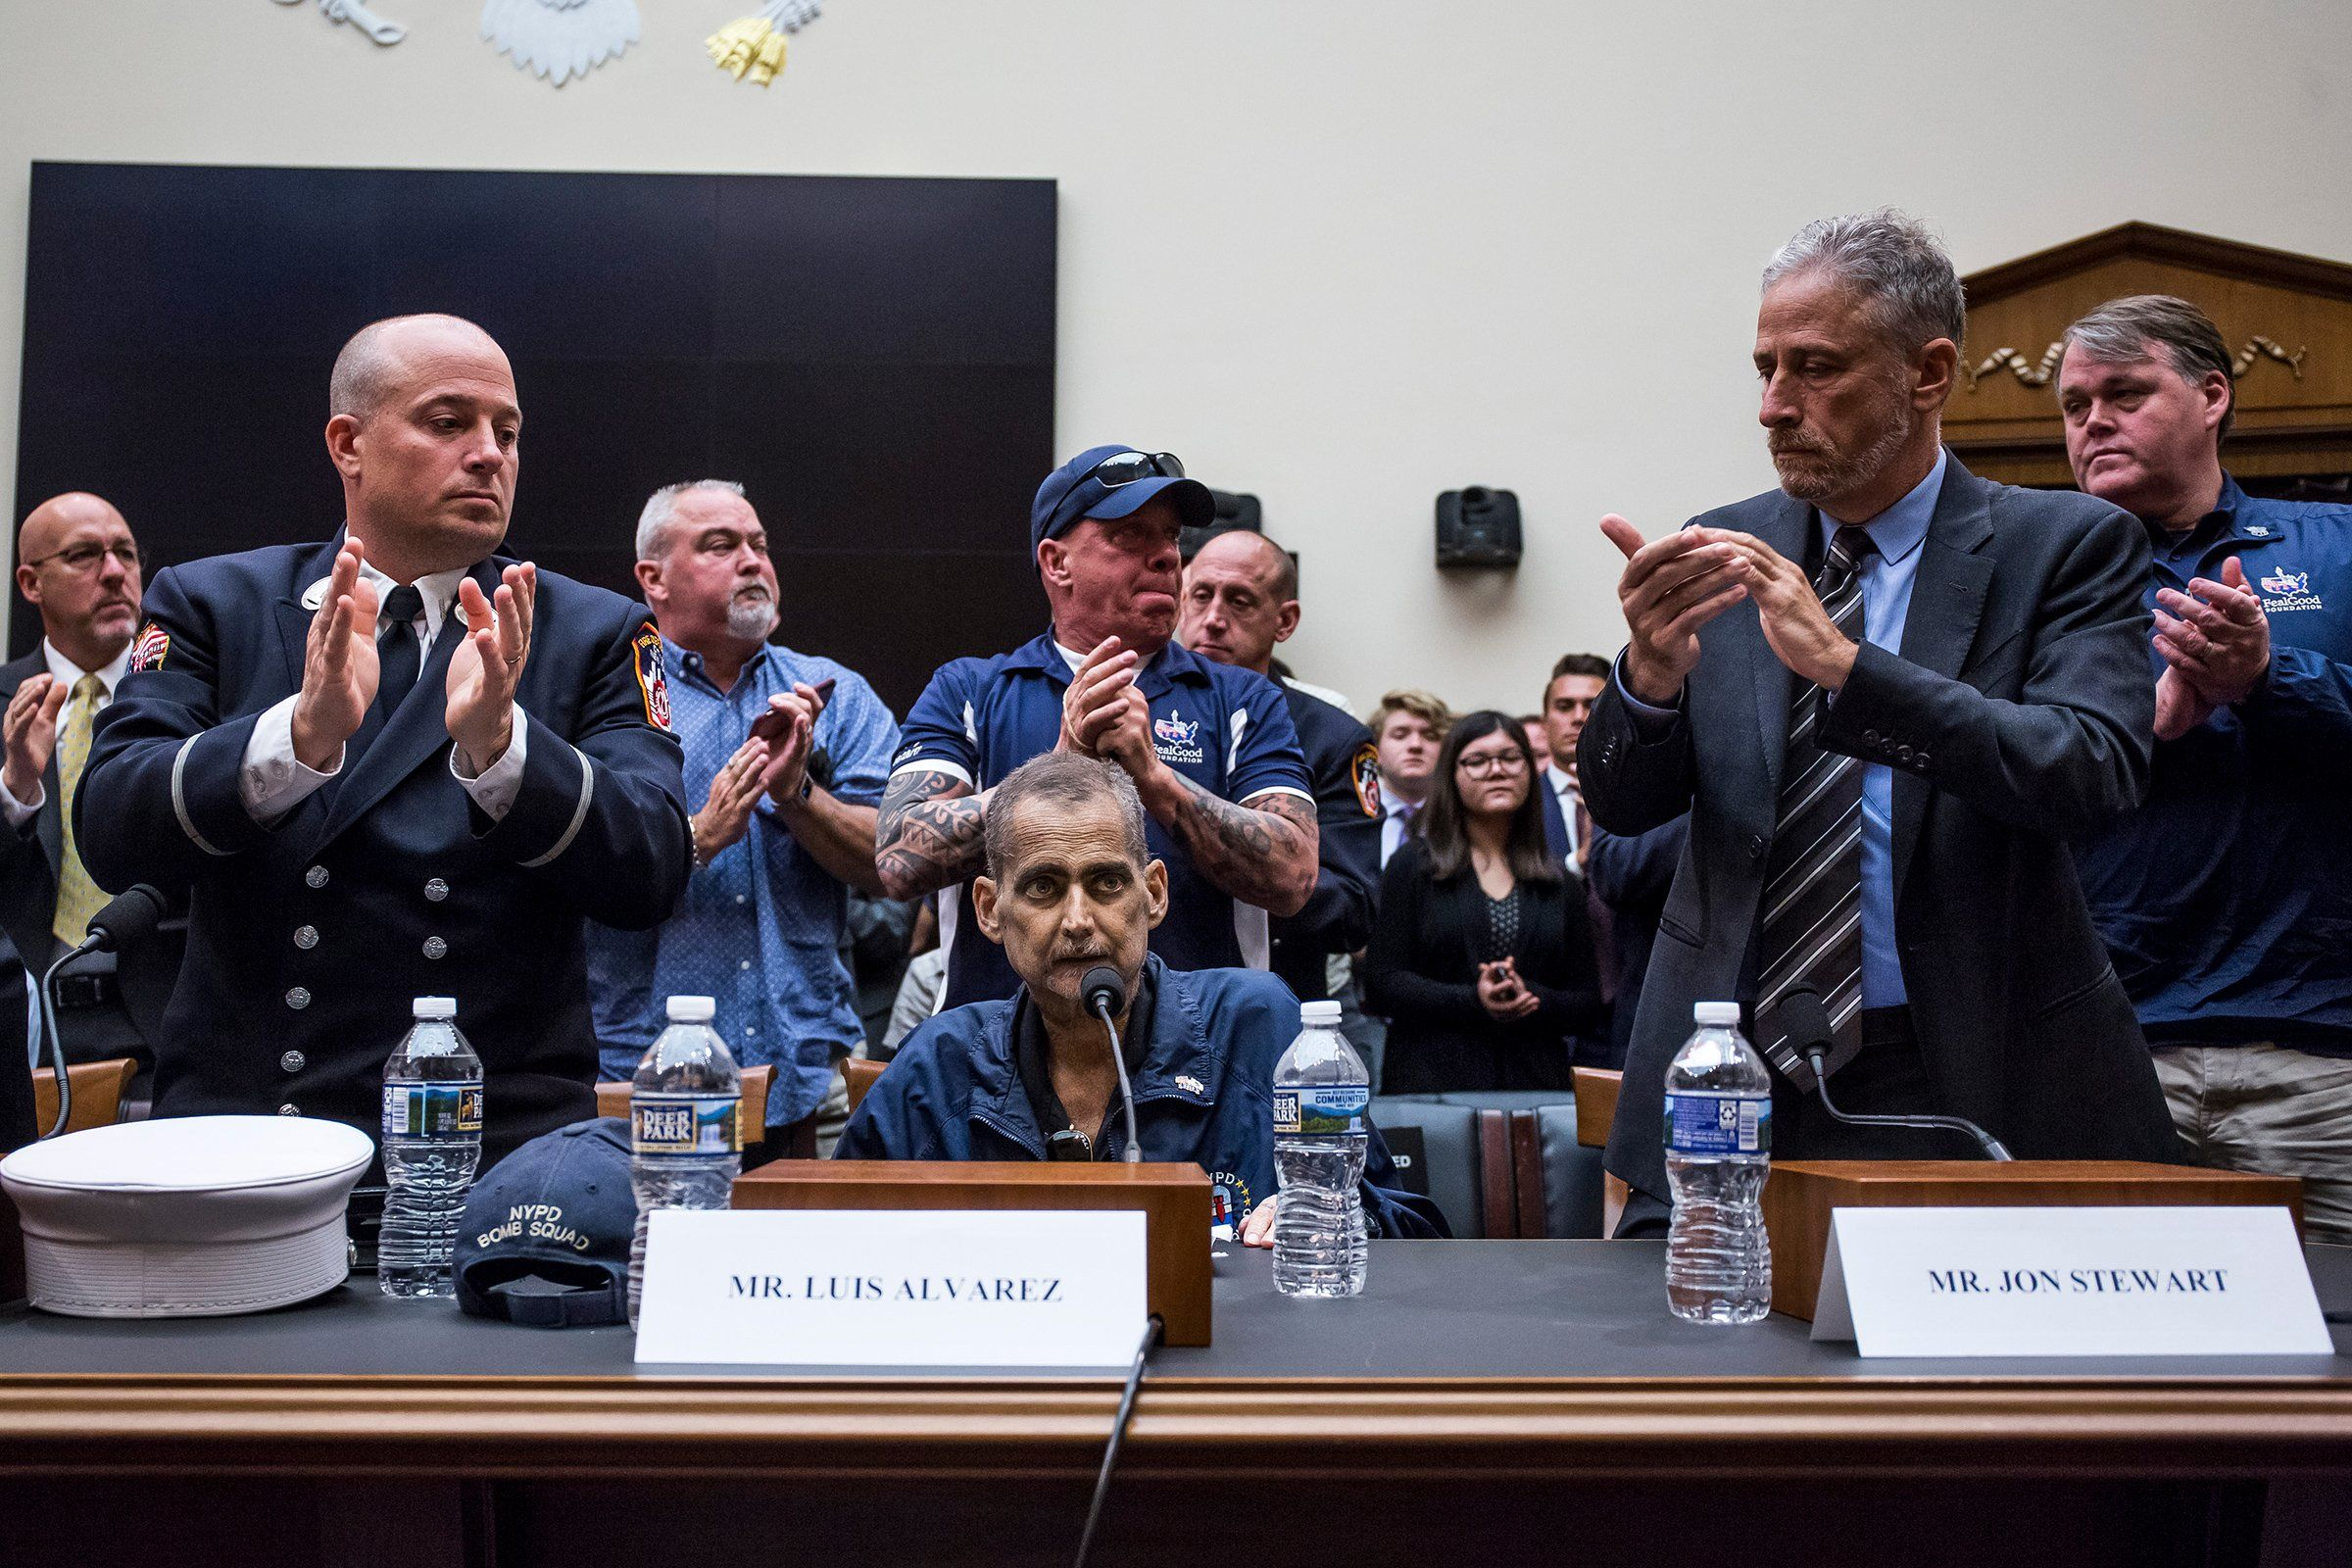 Retired New York Police Department detective and 9/11 responder Luis Alvarez is applauded after testifying during a hearing on reauthorization of the September 11th Victim Compensation Fund in Washington, D.C., on June 11. Among those clapping: Retired Fire Department of New York Lieutenant and 9/11 responder Michael O'Connell, left; John Feal of the FealGood Foundation, center; and former Daily Show host Jon Stewart. In July, Trump signed into law an extension of the fund—through 2092.